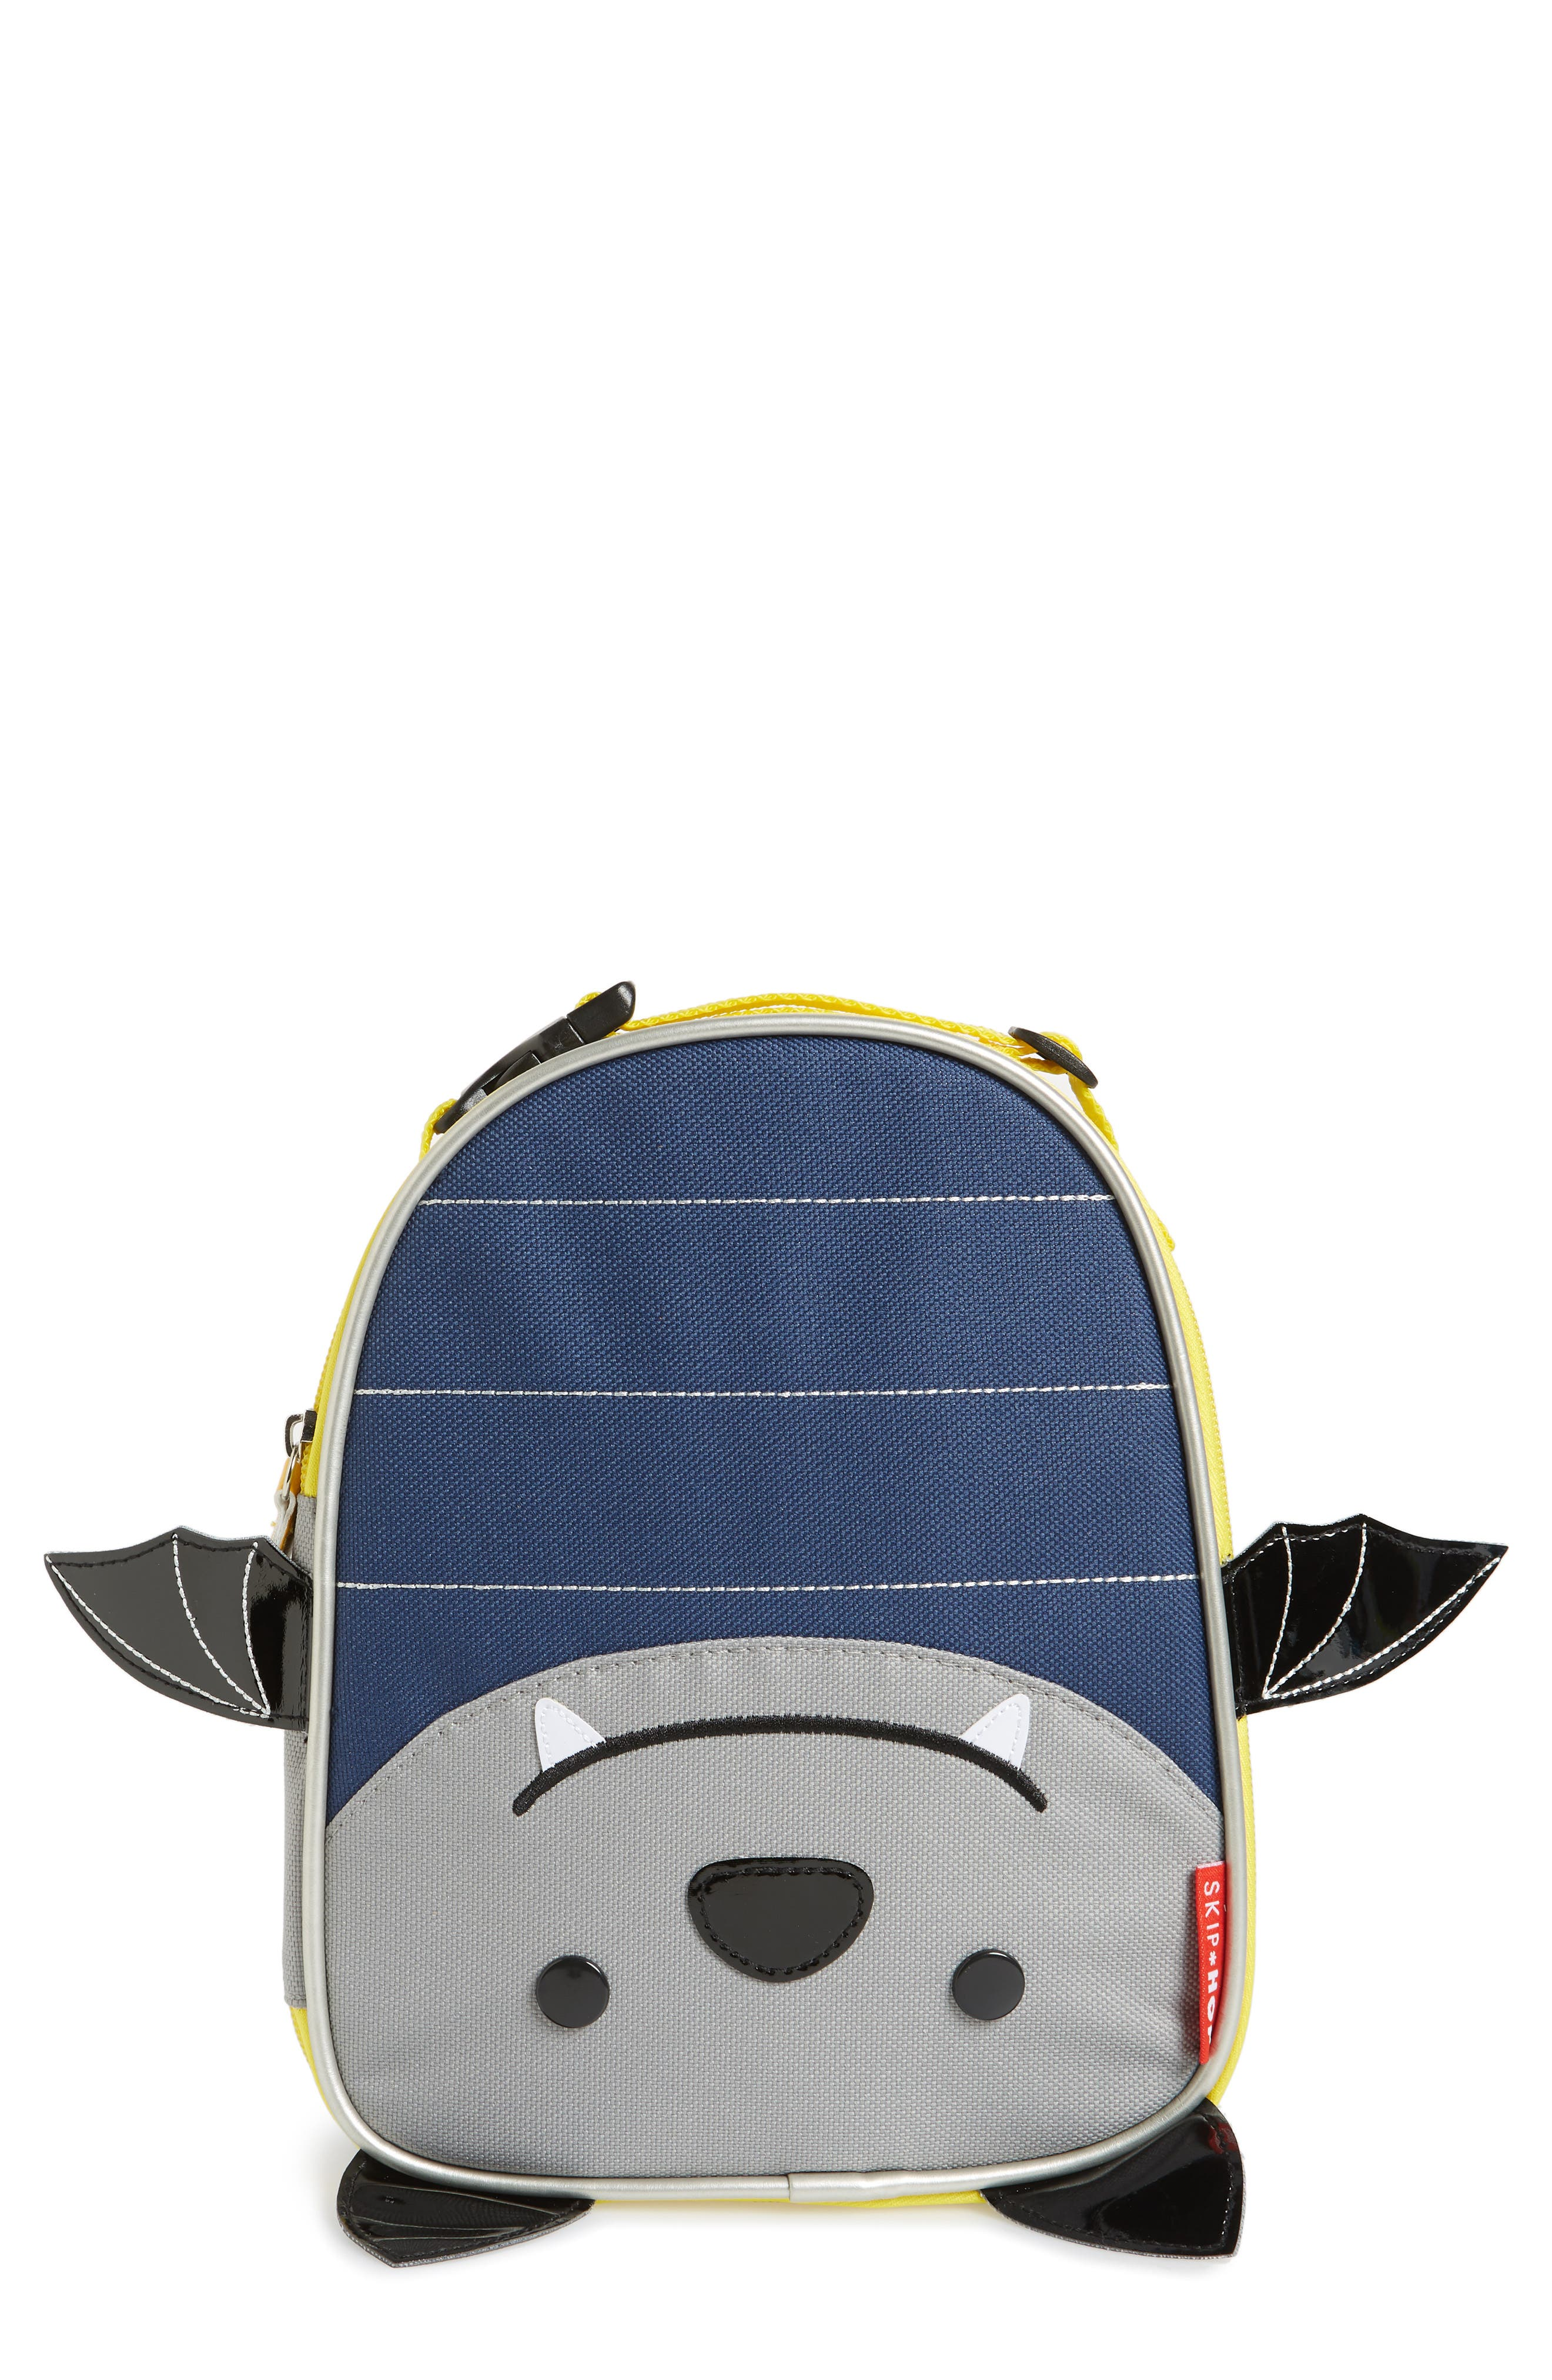 Zoo Lunchie - Bat Insulated Lunch Bag,                             Main thumbnail 1, color,                             NAVY BLUE